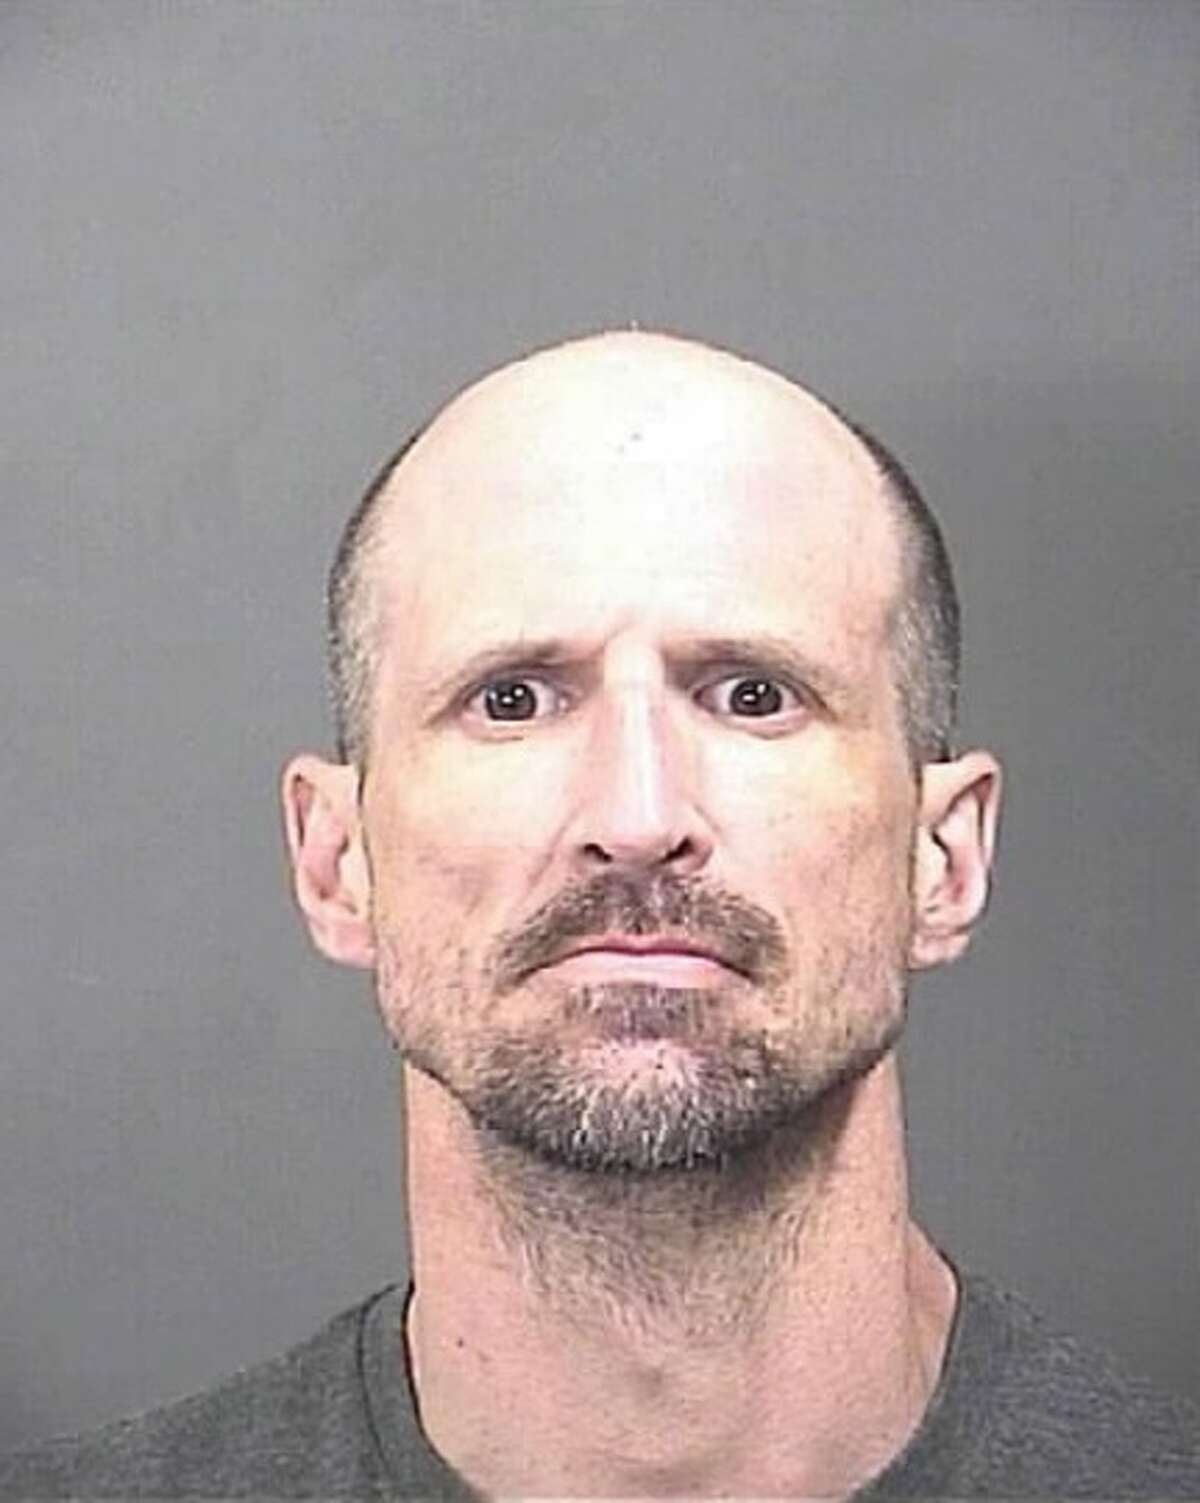 Don Spitaleri is charged with possession of a controlled substance in Harris County.